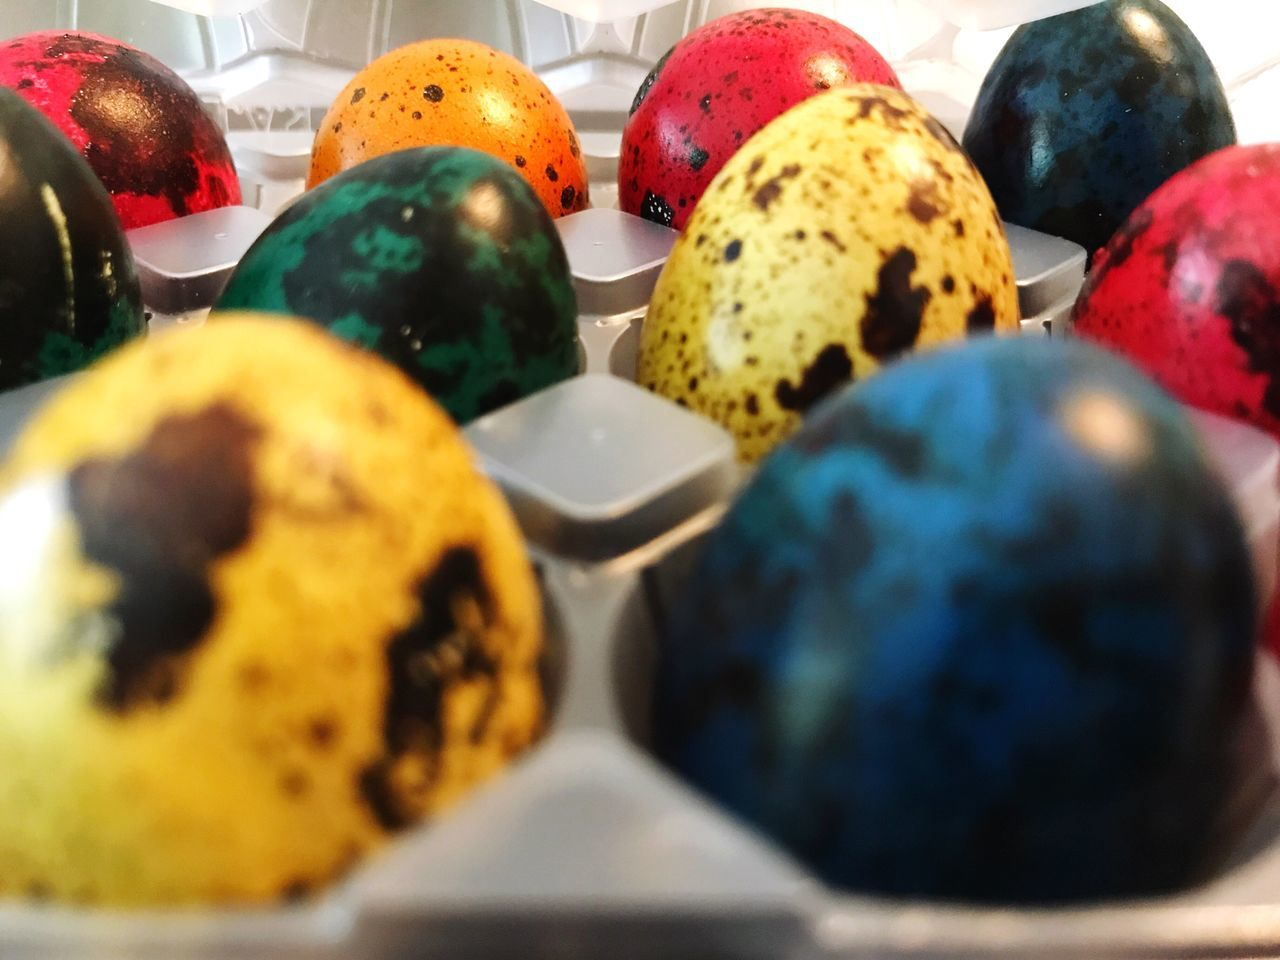 Eggs Easter Eggs Quail Eggs Colored Eggs Easter Food Food And Drink Multi Colored Egg Easter Easter Egg Selective Focus Close-up